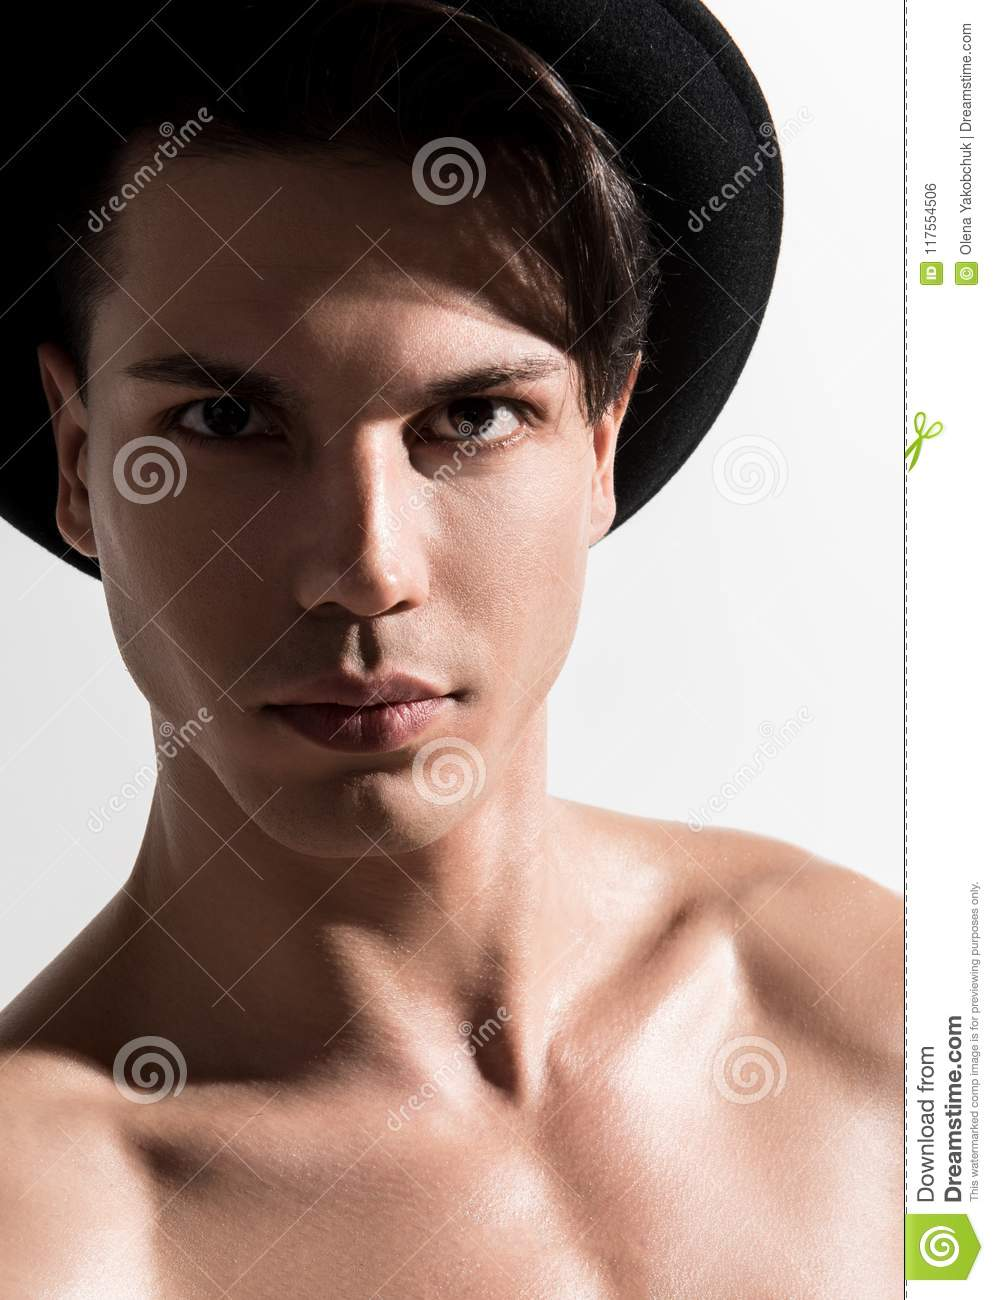 Portrait of naked young male with clean and healthy skin in stylish hat is  standing against light background and looking at camera decisively.